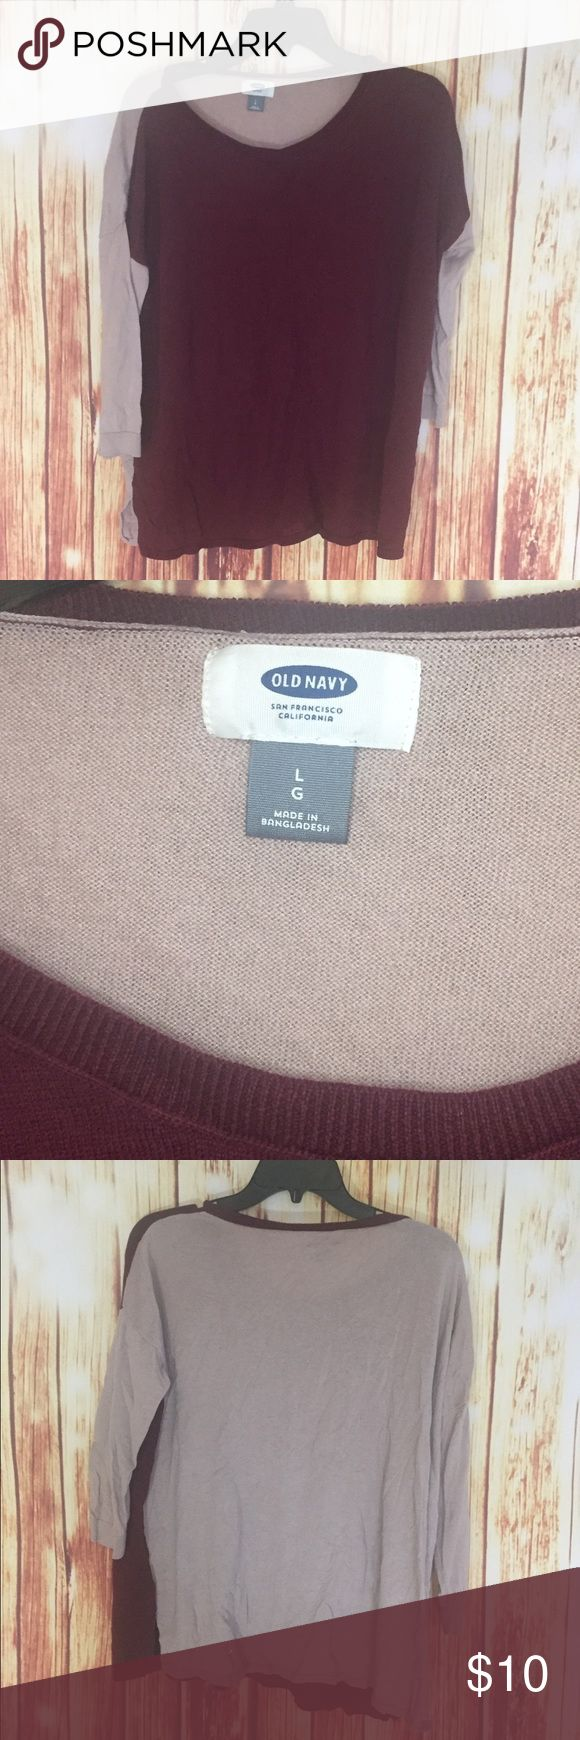 Old navy long sleeve top Color blocking long sleeve top Old Navy Tops